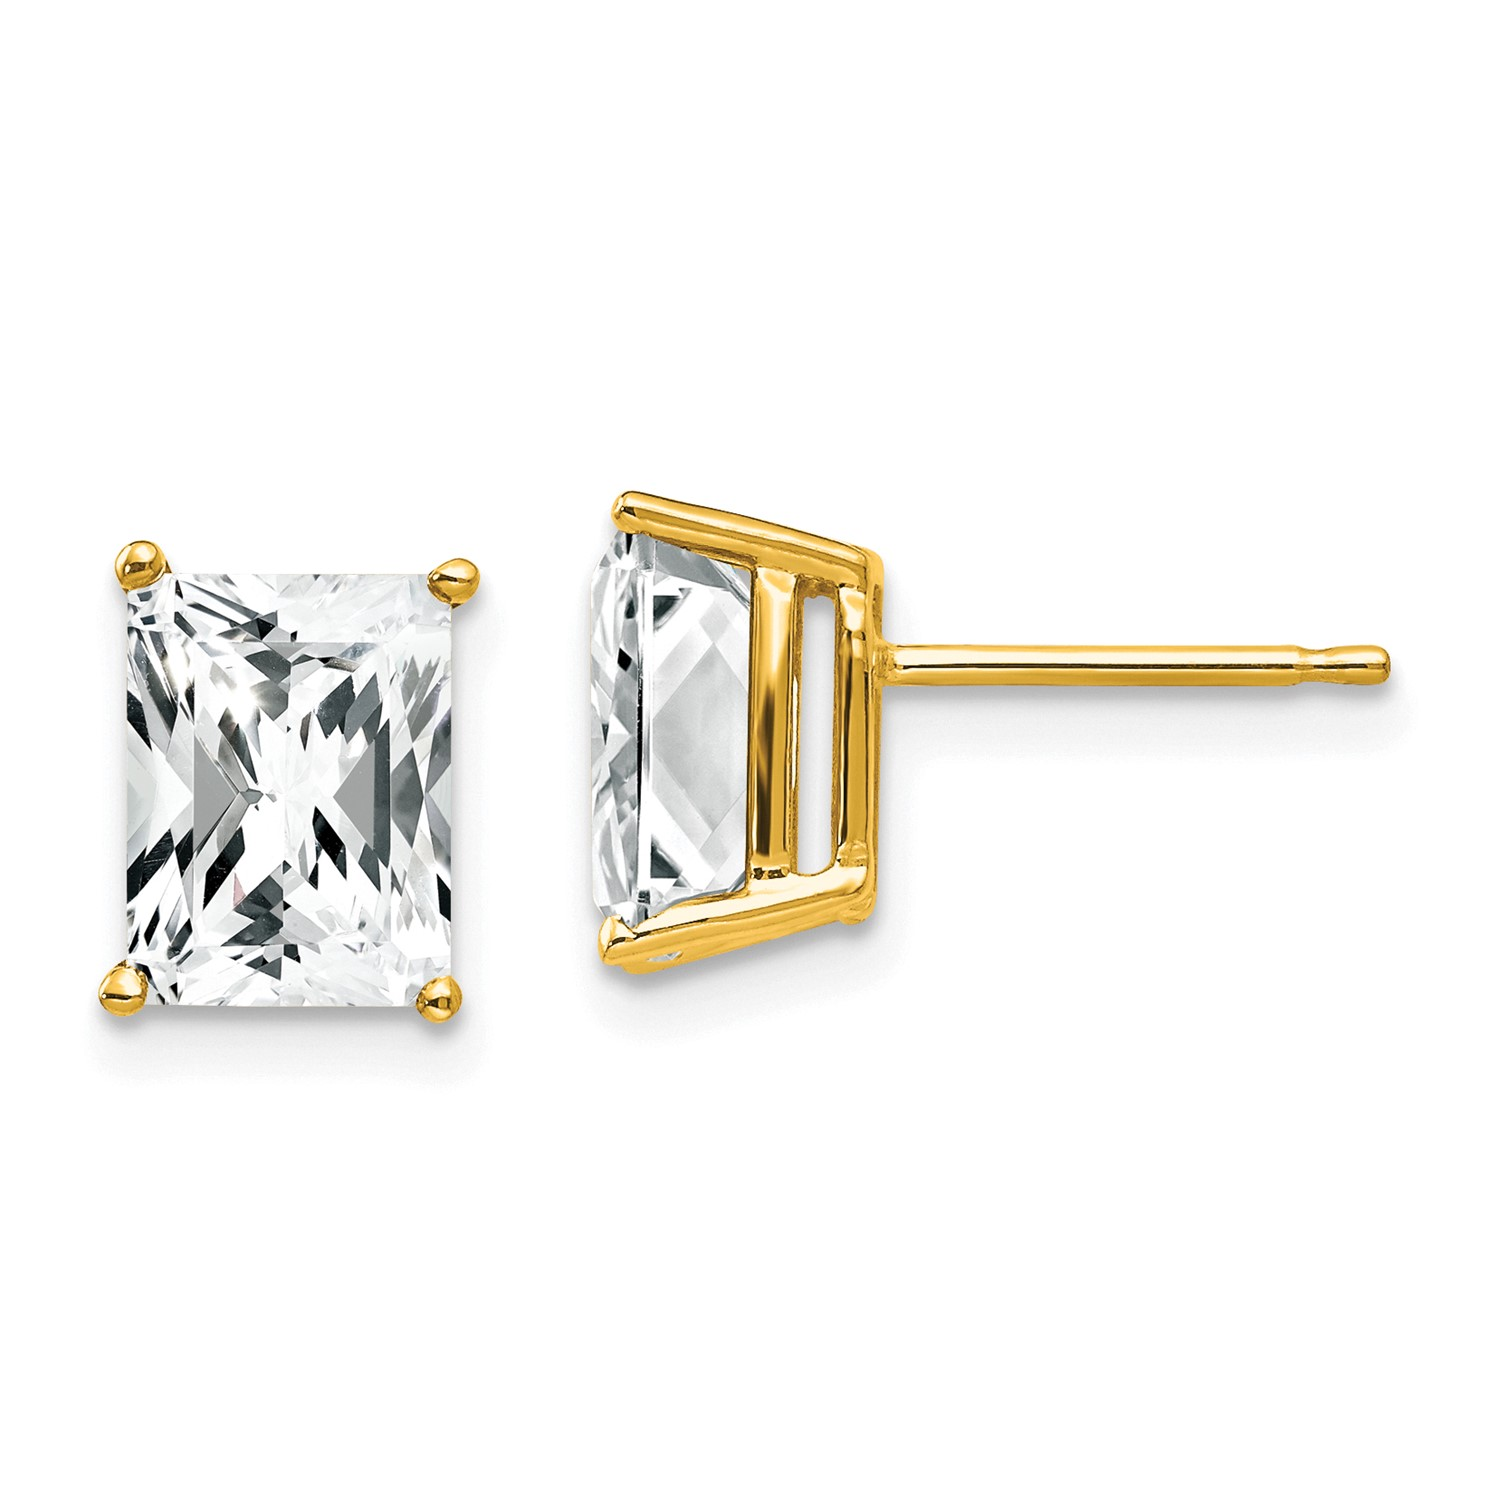 Image Is Loading 14k Yellow Gold 8x6mm Emerald Cut Cubic Zirconia